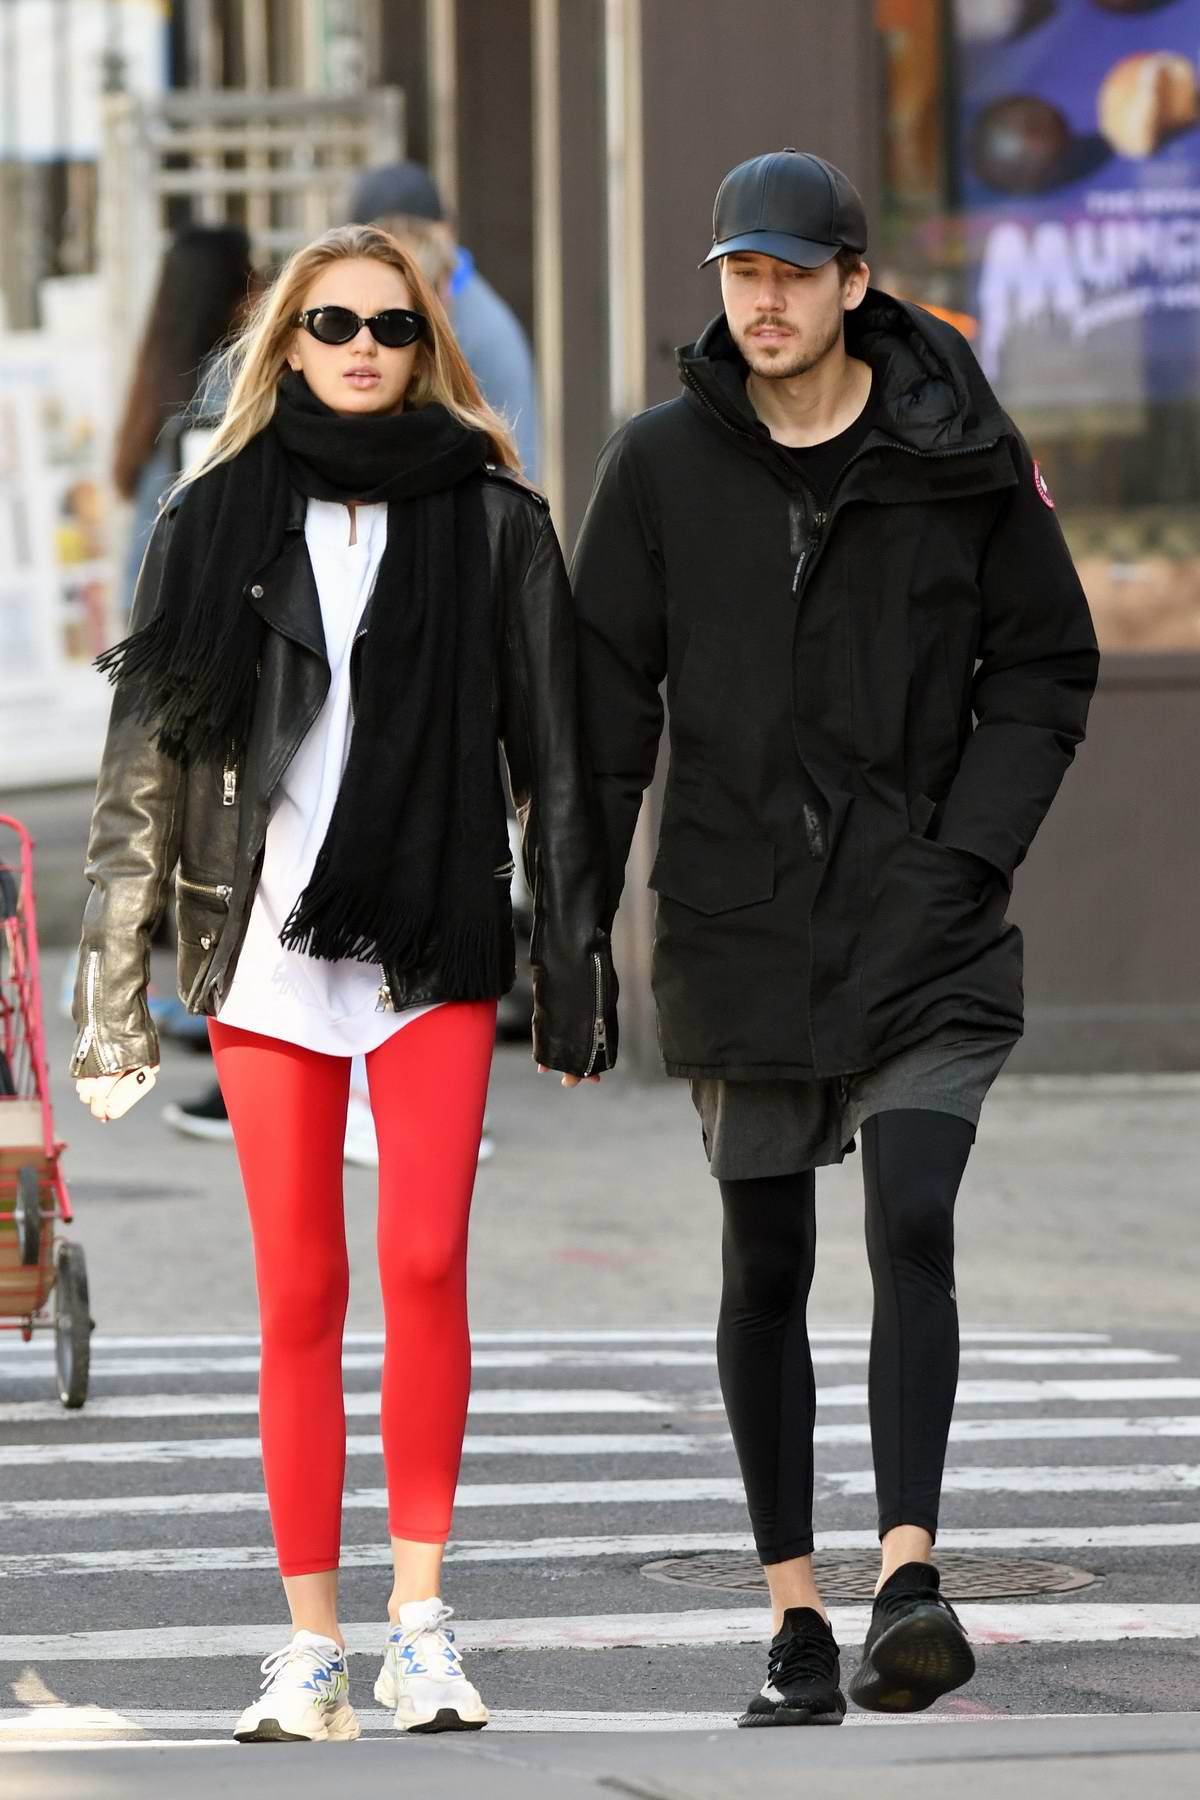 Romee Strijd looks striking in bright red leggings and black leather jacket while out for a stroll in New York City